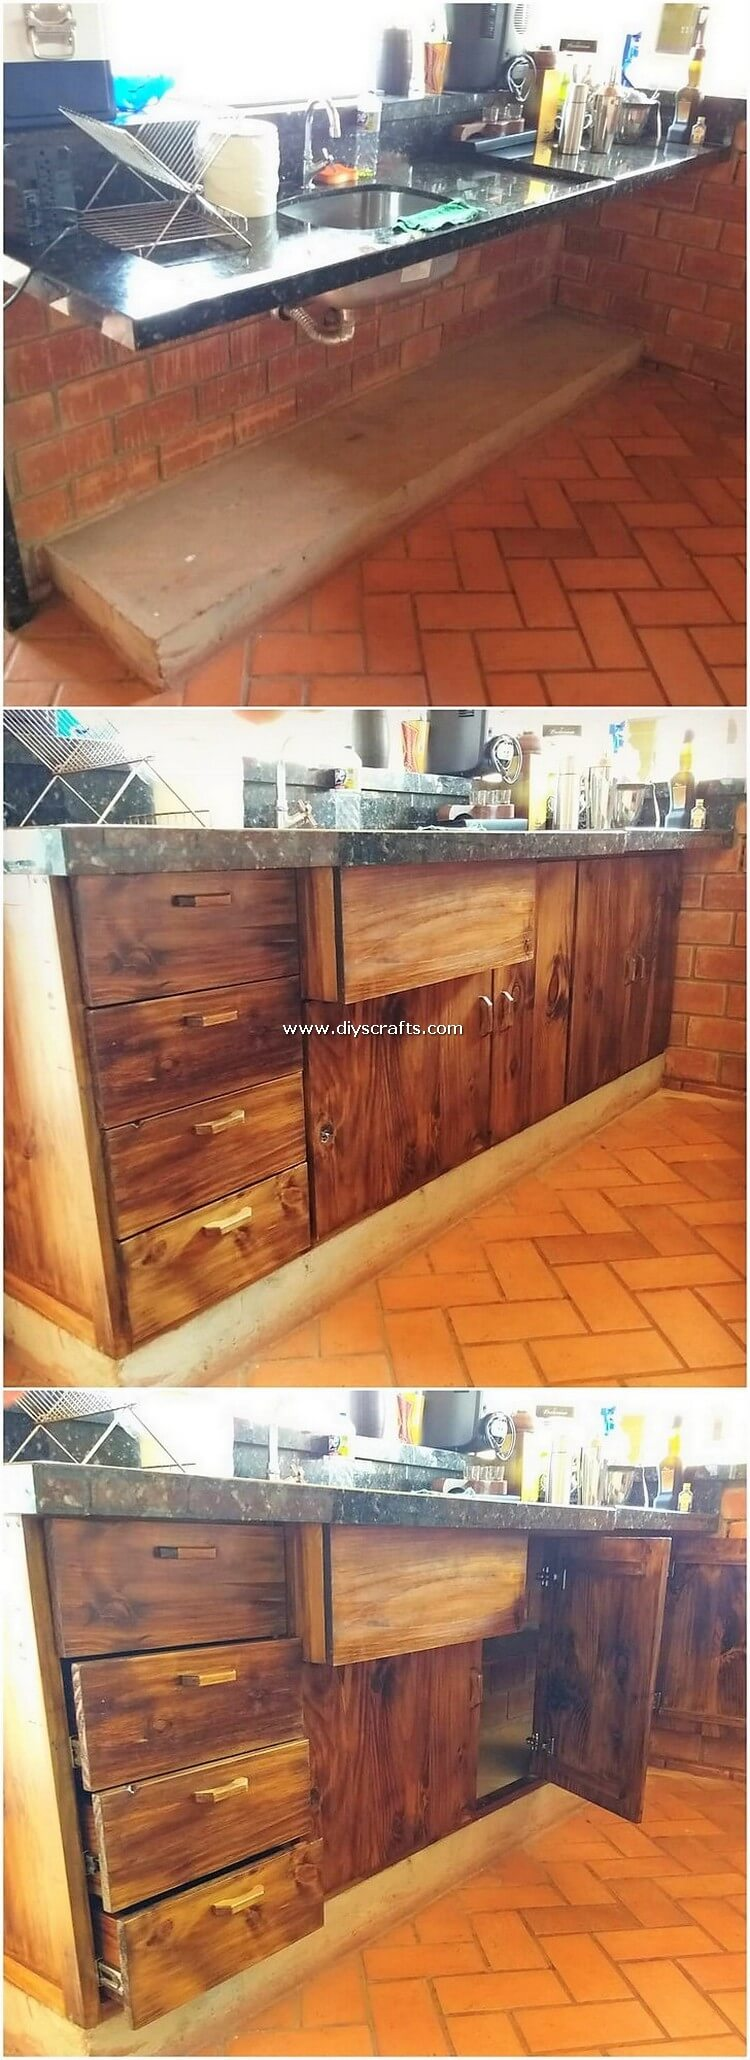 Pallet-Kitchen-Cabinets-1